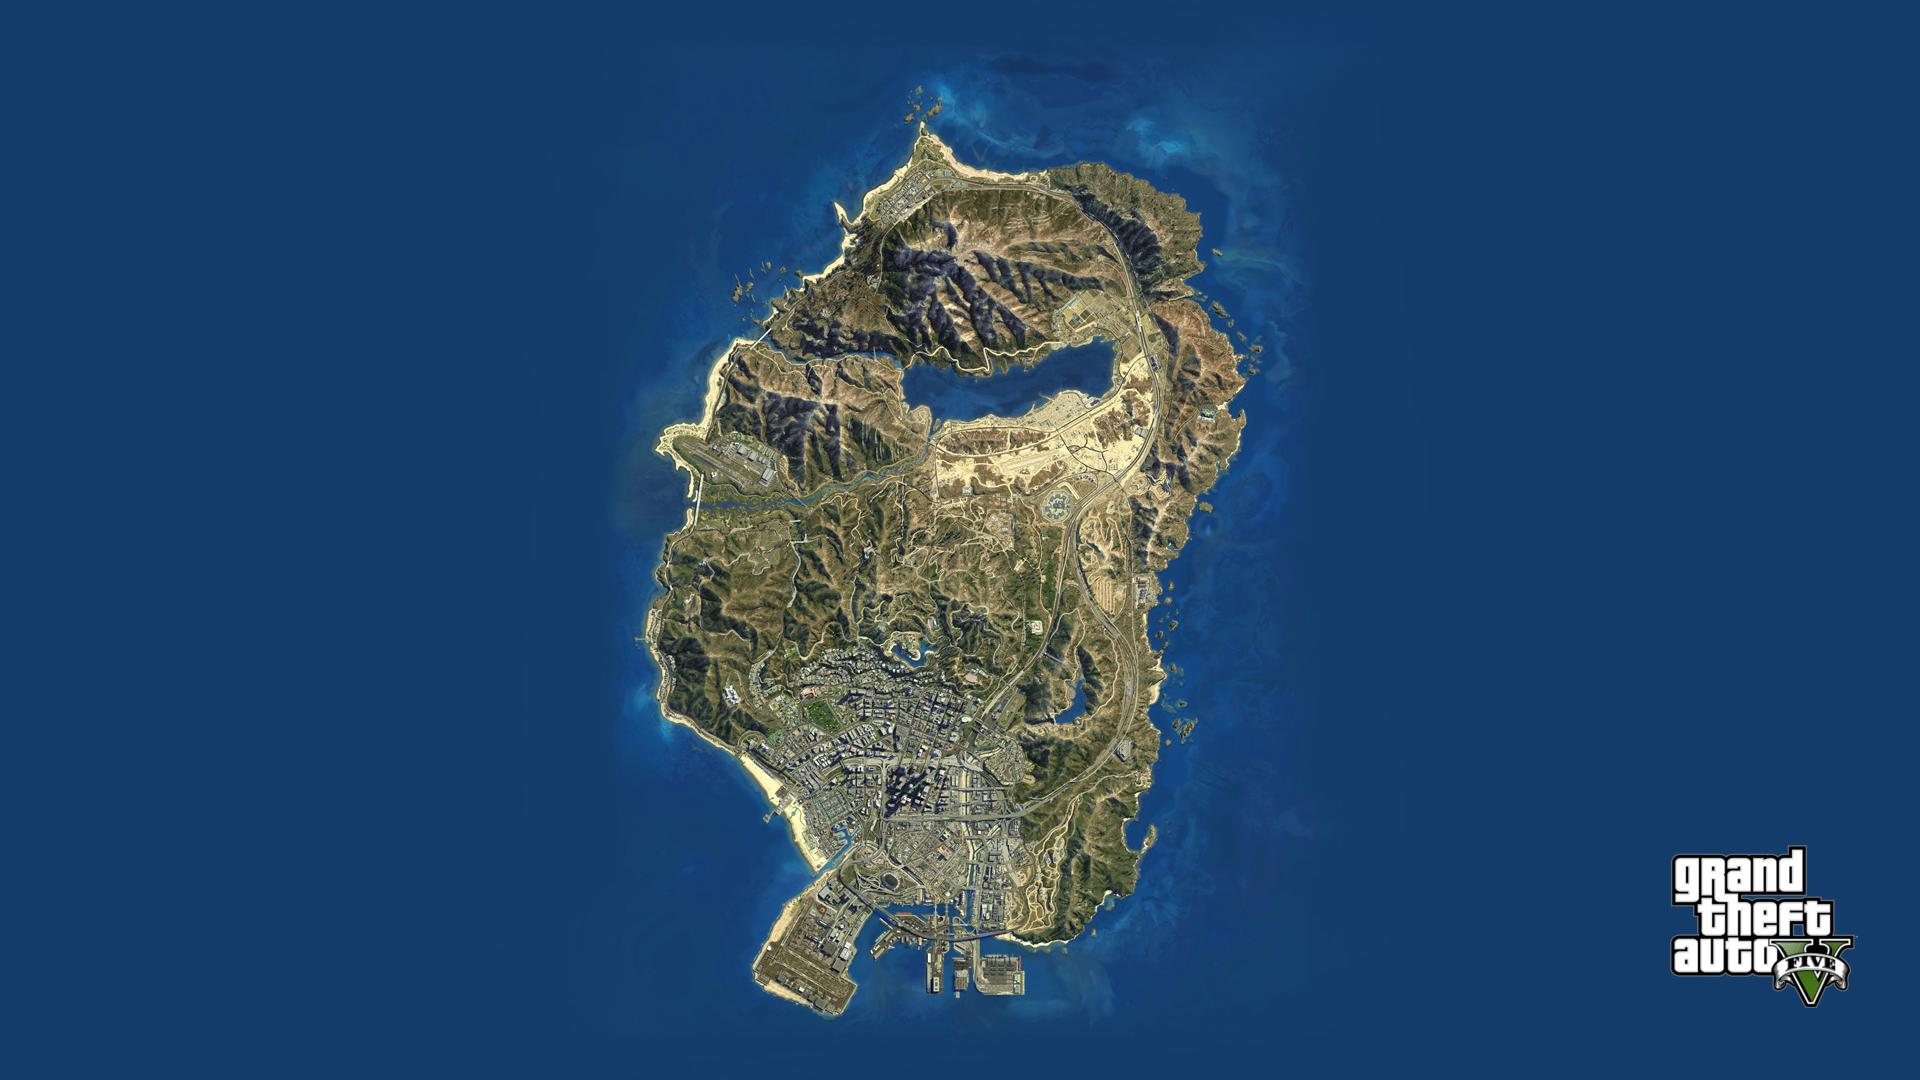 GTA V Map Wallpaper 1080p   GTA V   GTAForums 1920x1080